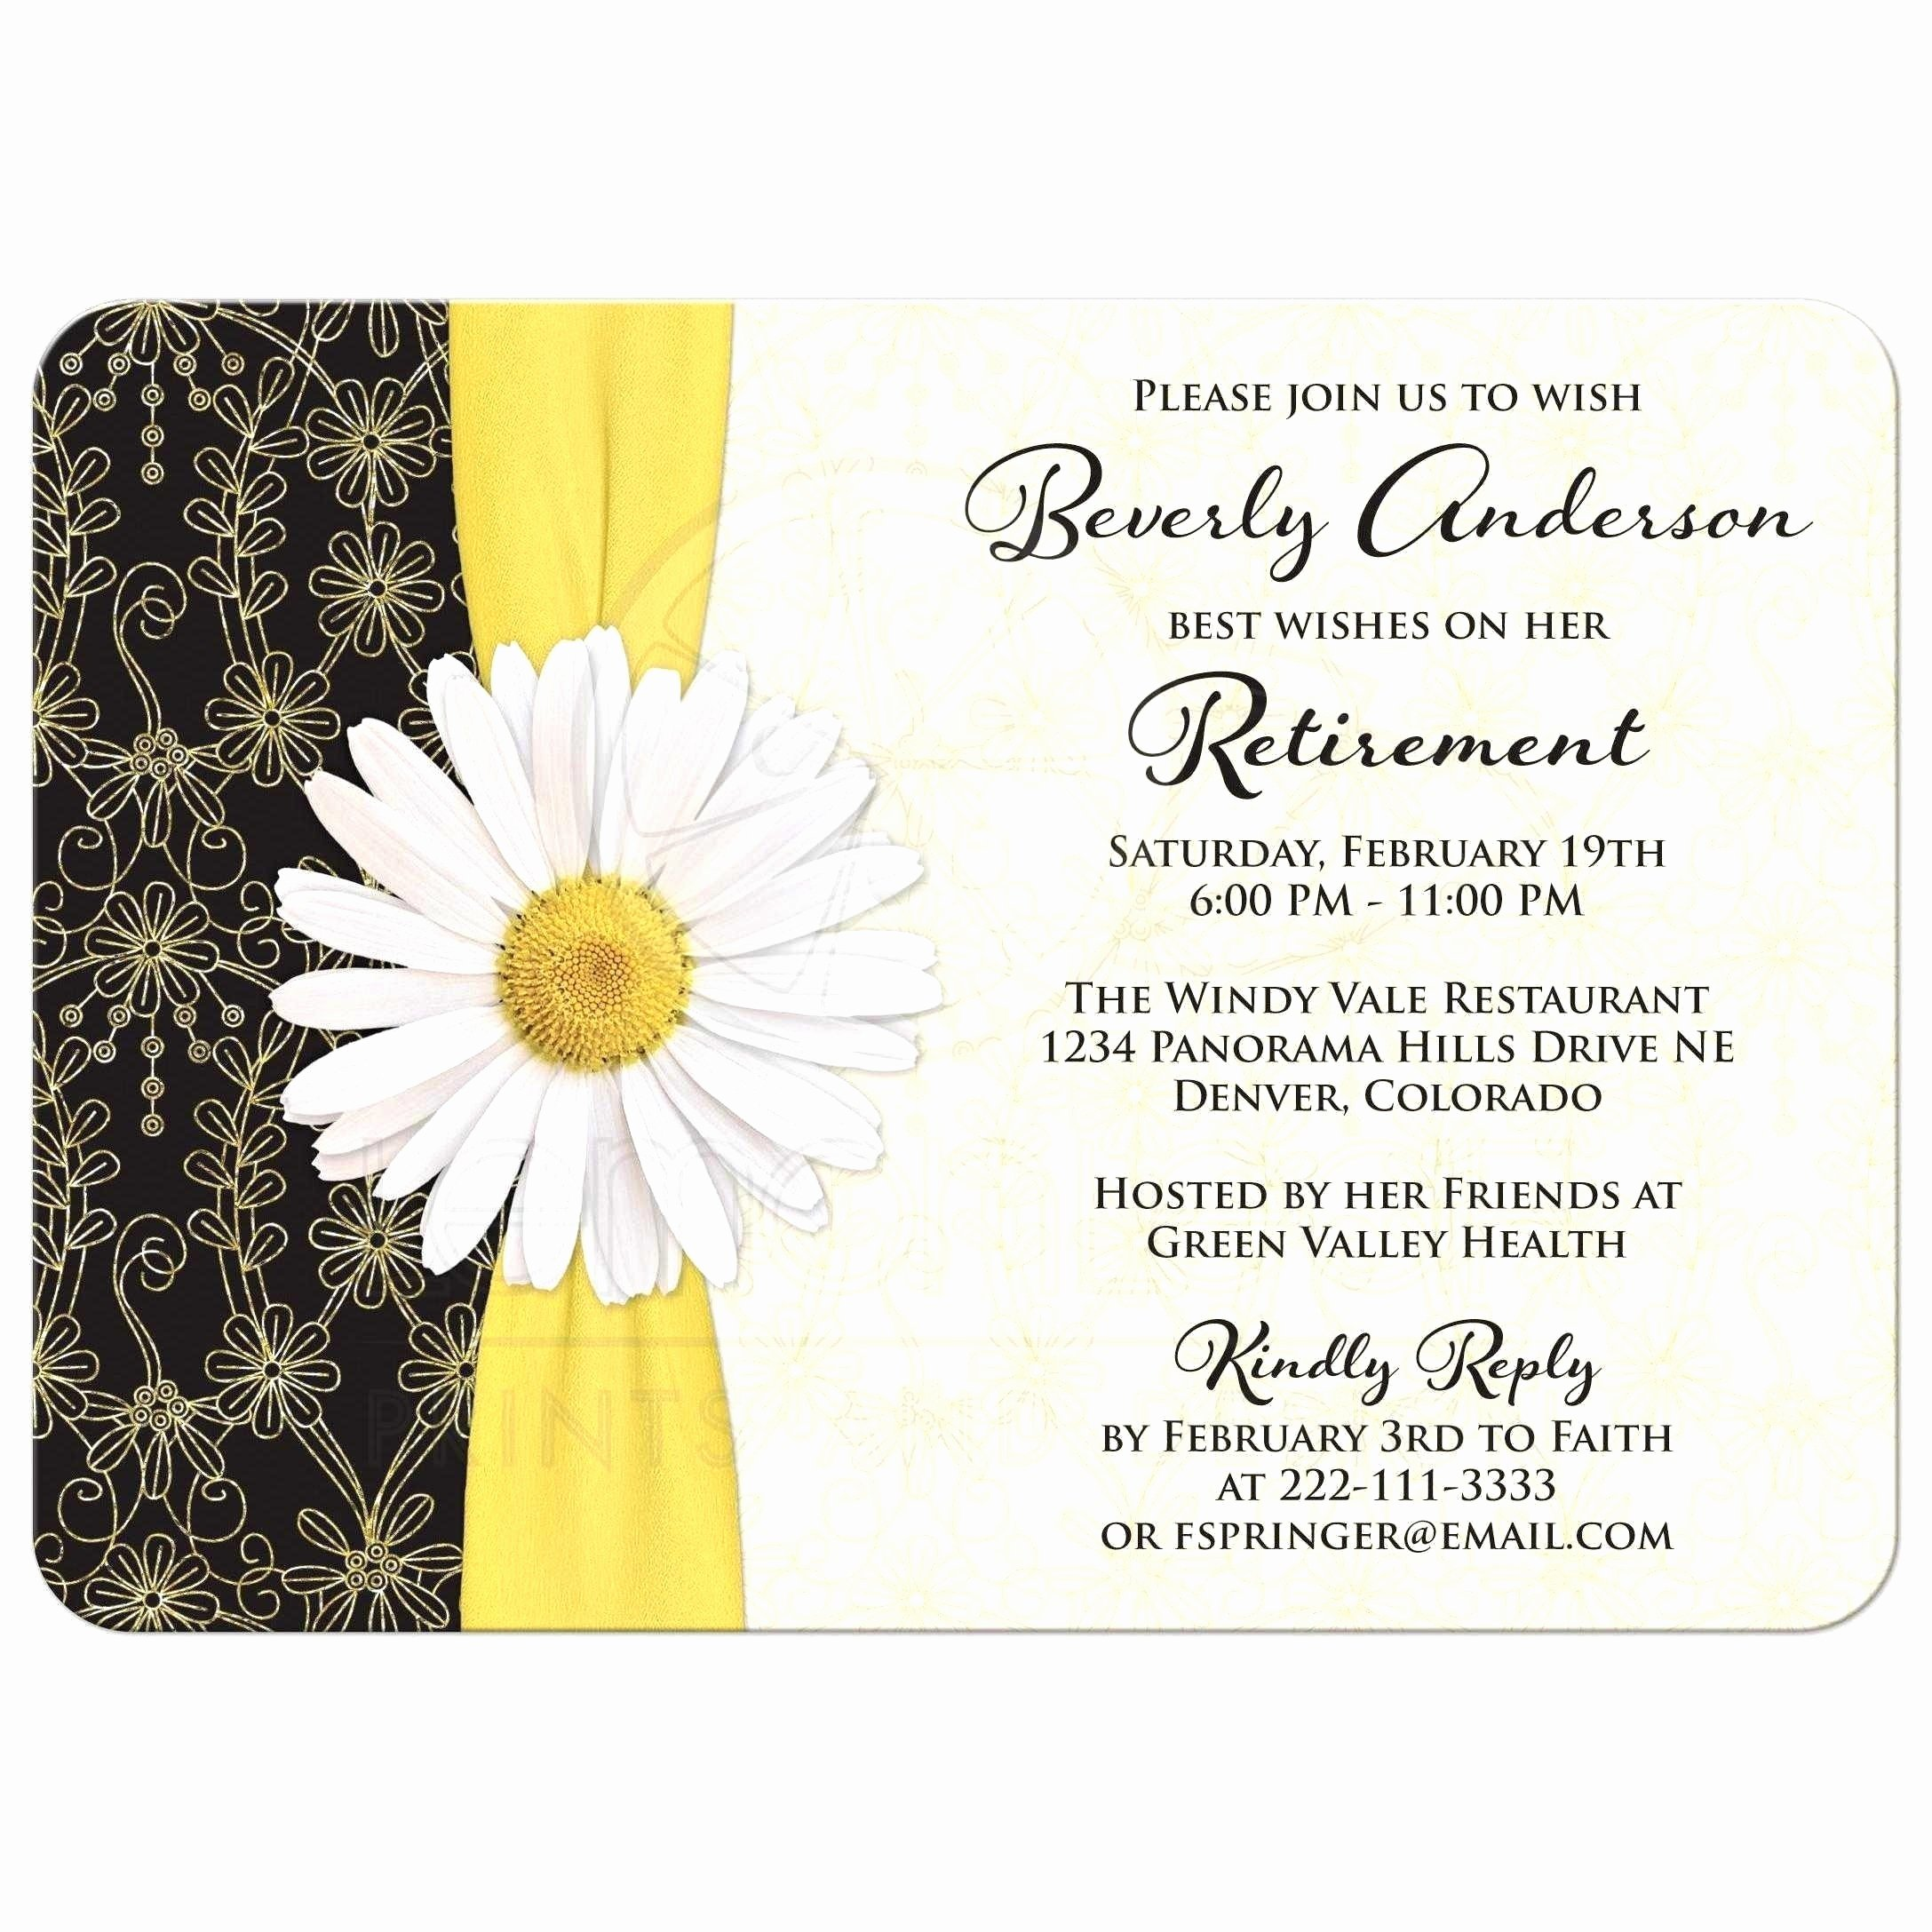 Retirement Party Invitation Template Fresh Free Invitation Templates for Retirement Party New